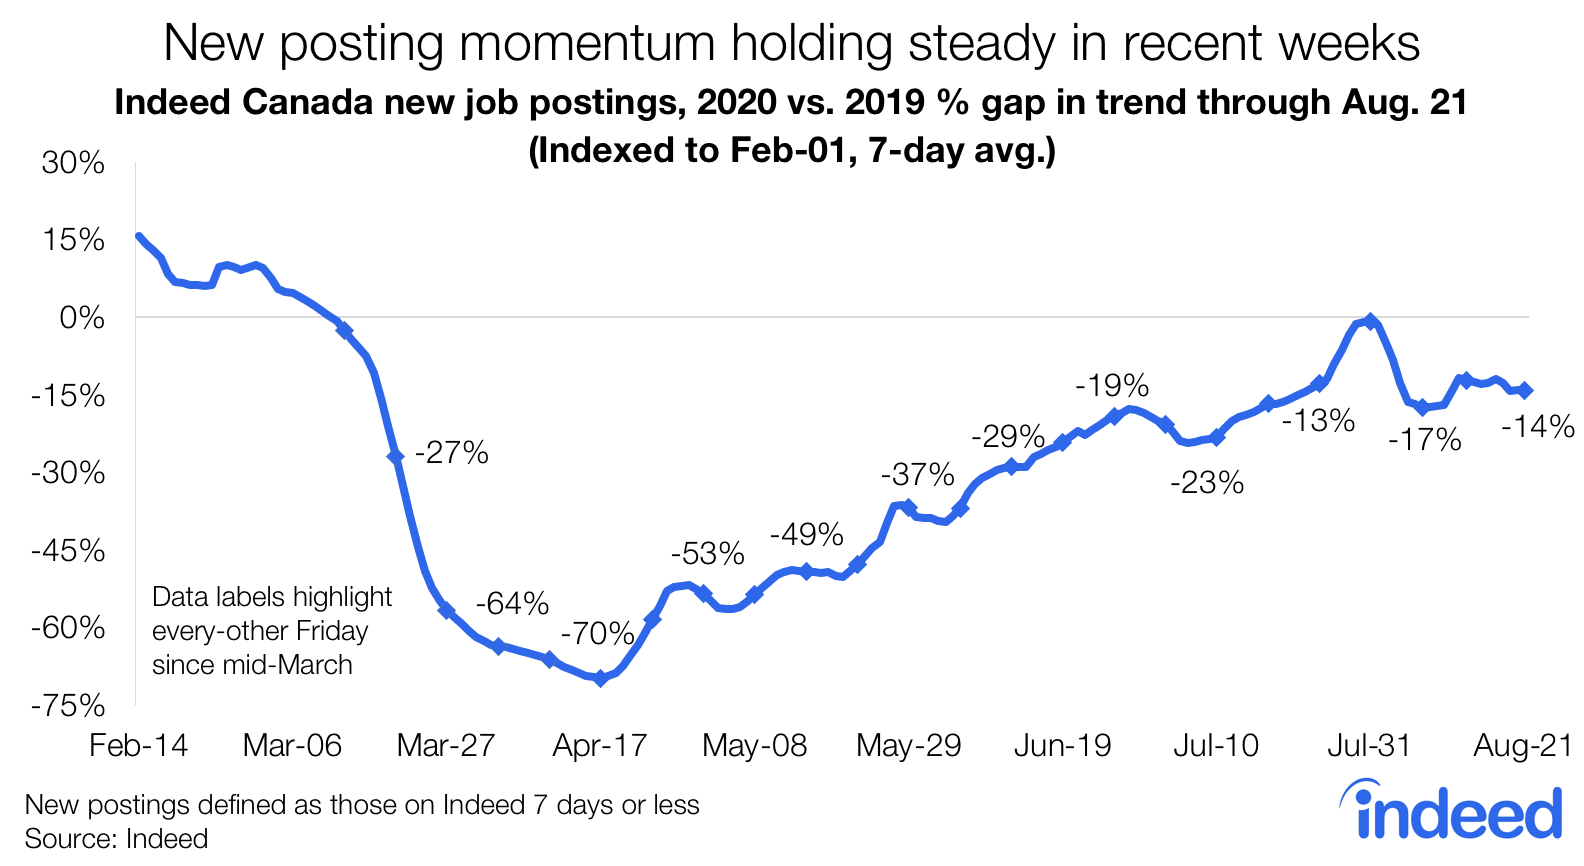 Line chart showing job posting momentum in Canada during COVID